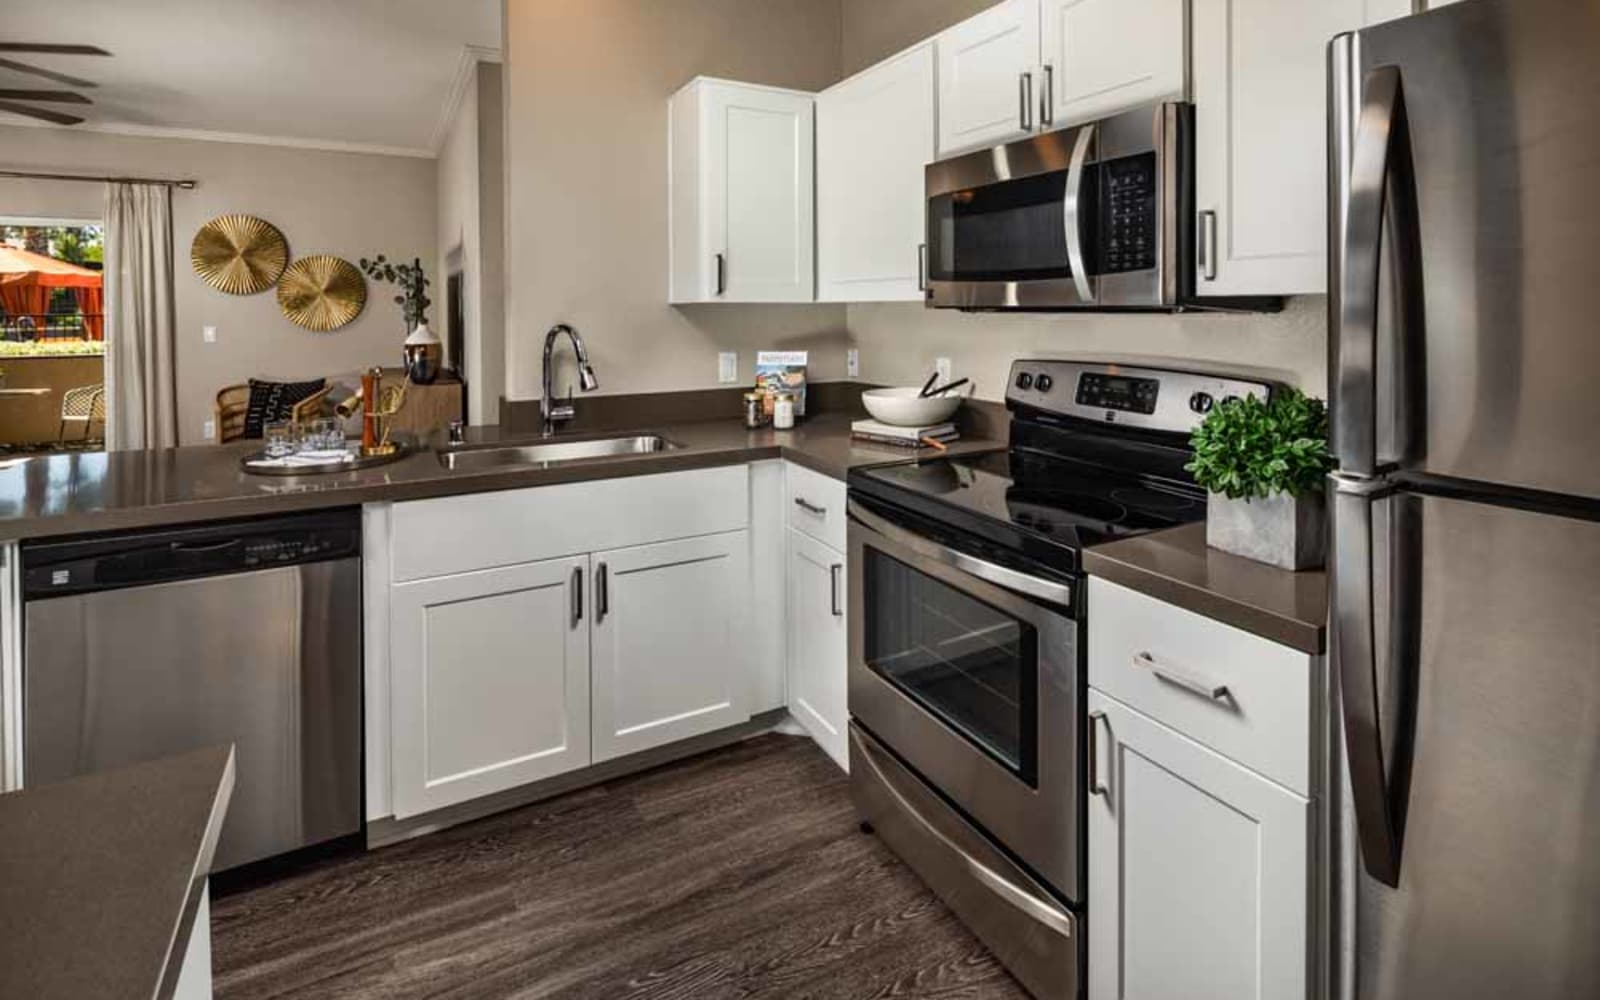 Plenty of counter space in an apartment kitchen at Colonnade at Sycamore Highlands in Riverside, California